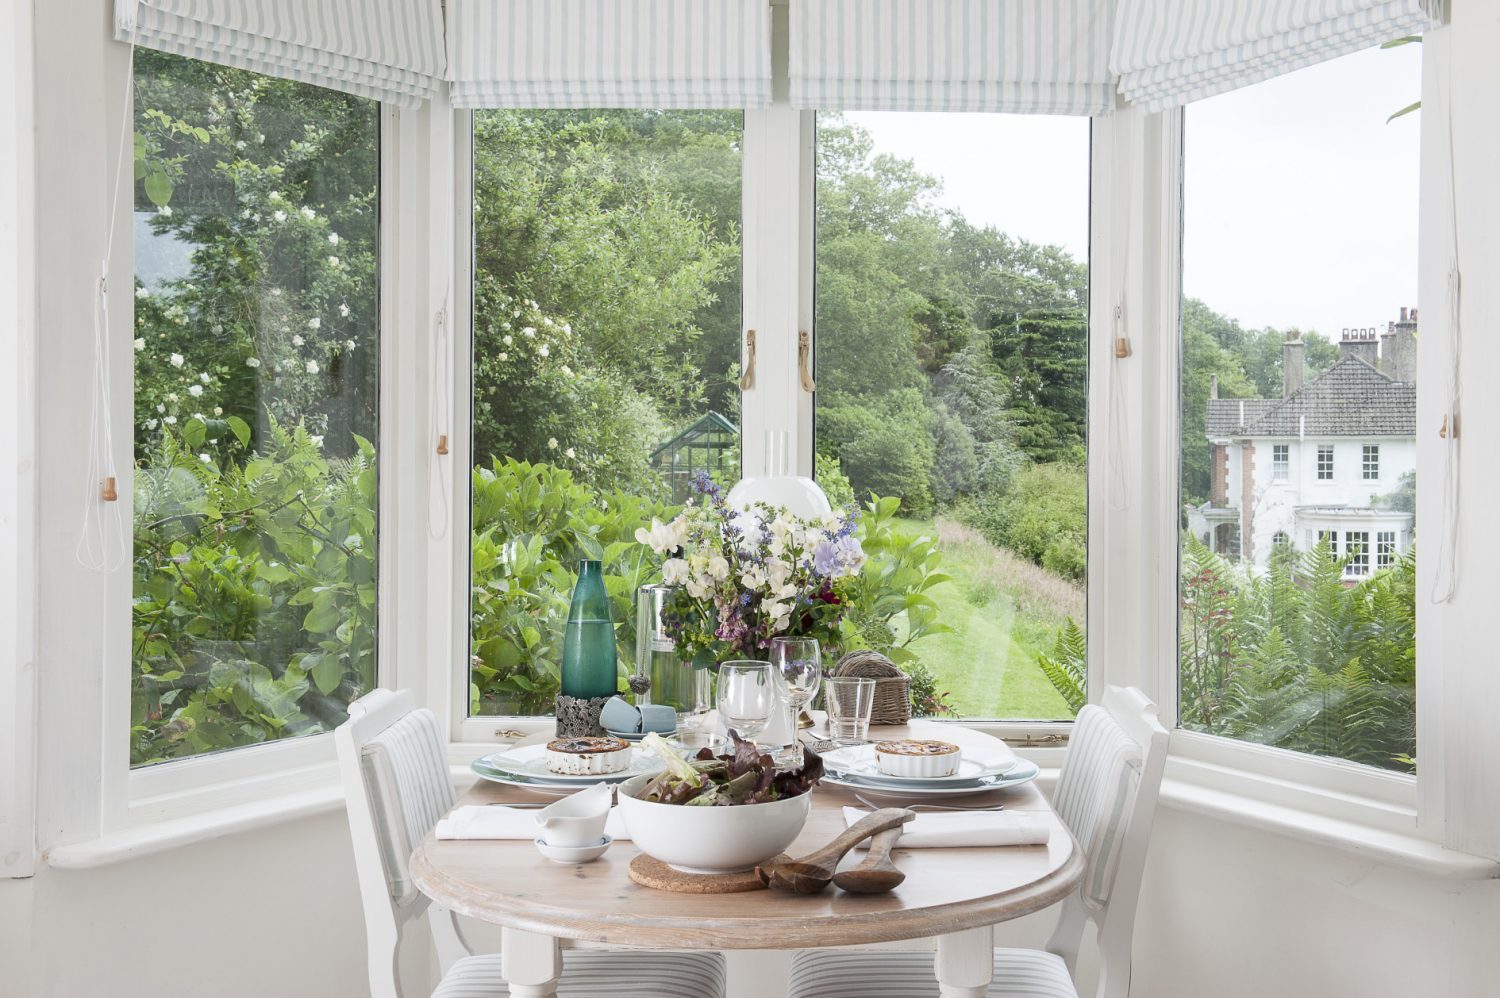 In the bay window is an intimate table for two she found at Mark Maynard in Tunbridge Wells